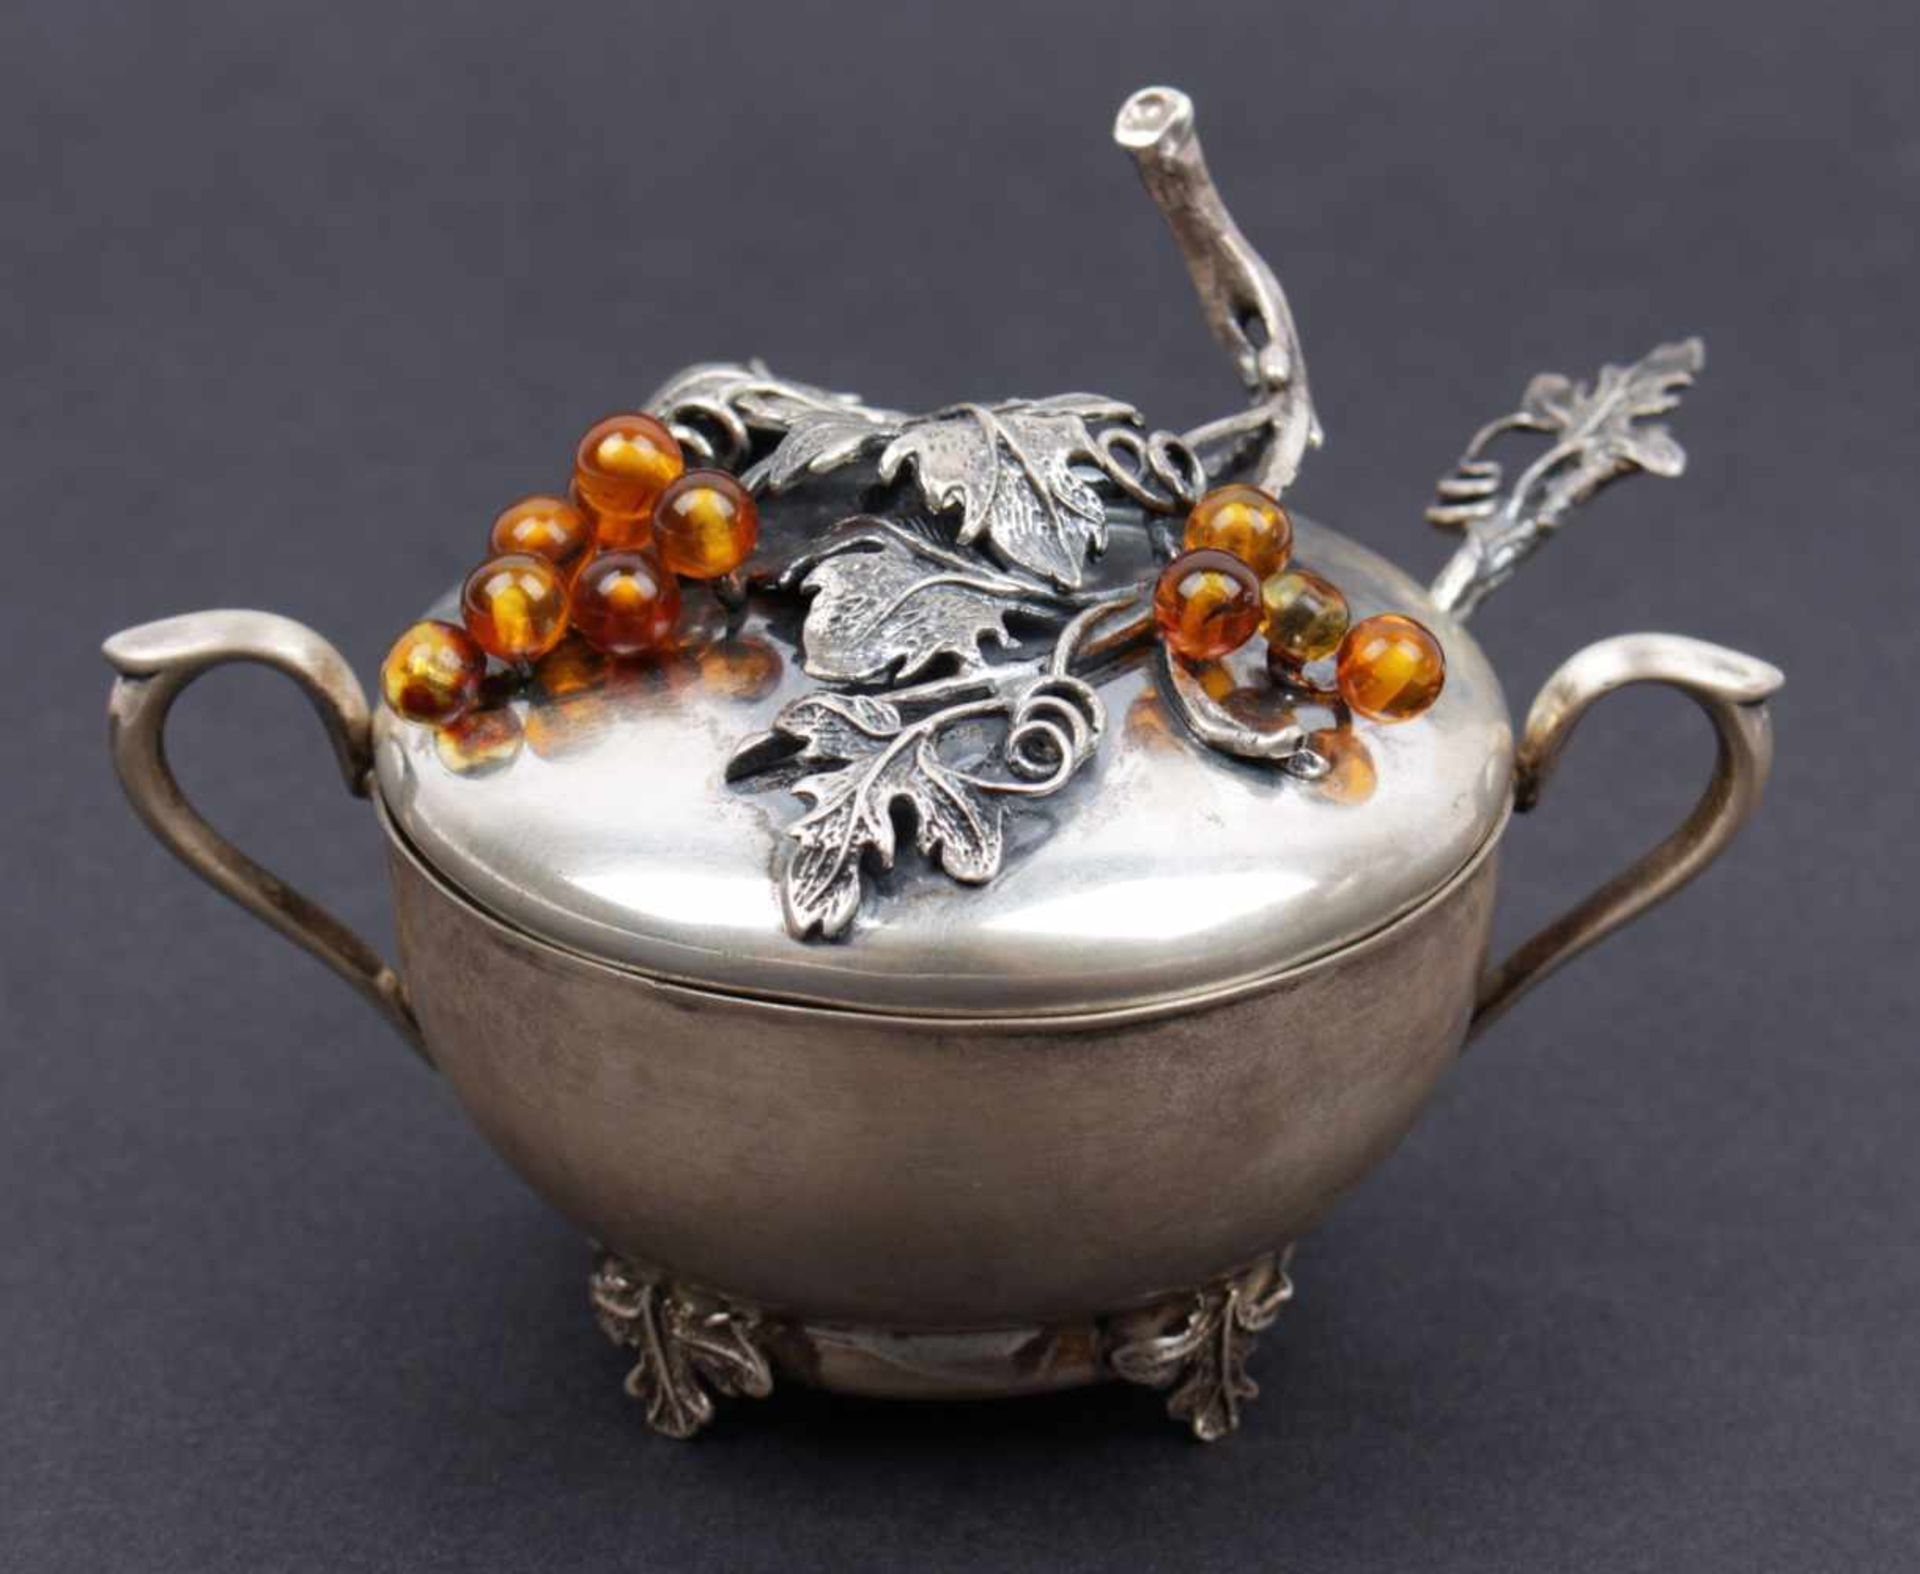 Los 51 - Silver sugar bowl Poland, 3rd thurd of the 20th century, silver sugar bowl decorated with a relif of